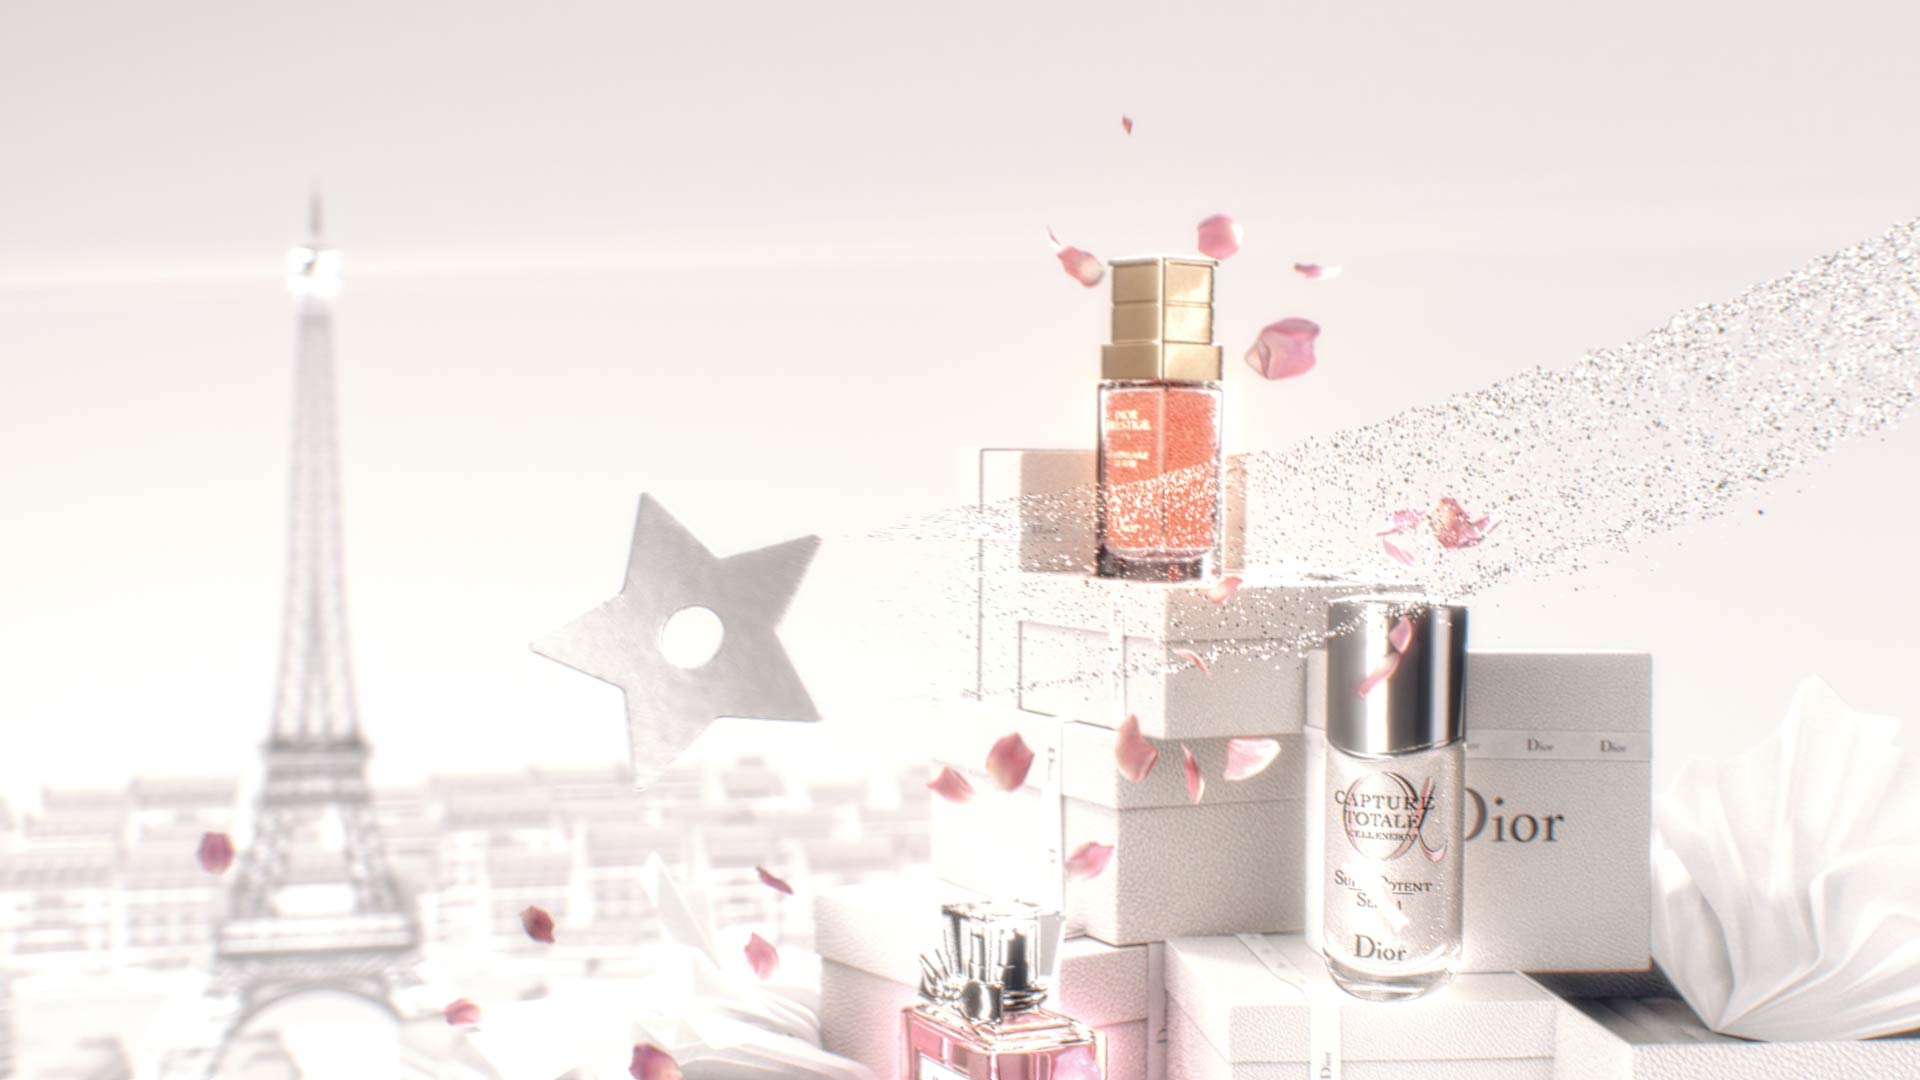 3D Motion Design with Dior products on top of gift boxes with Paris in the background